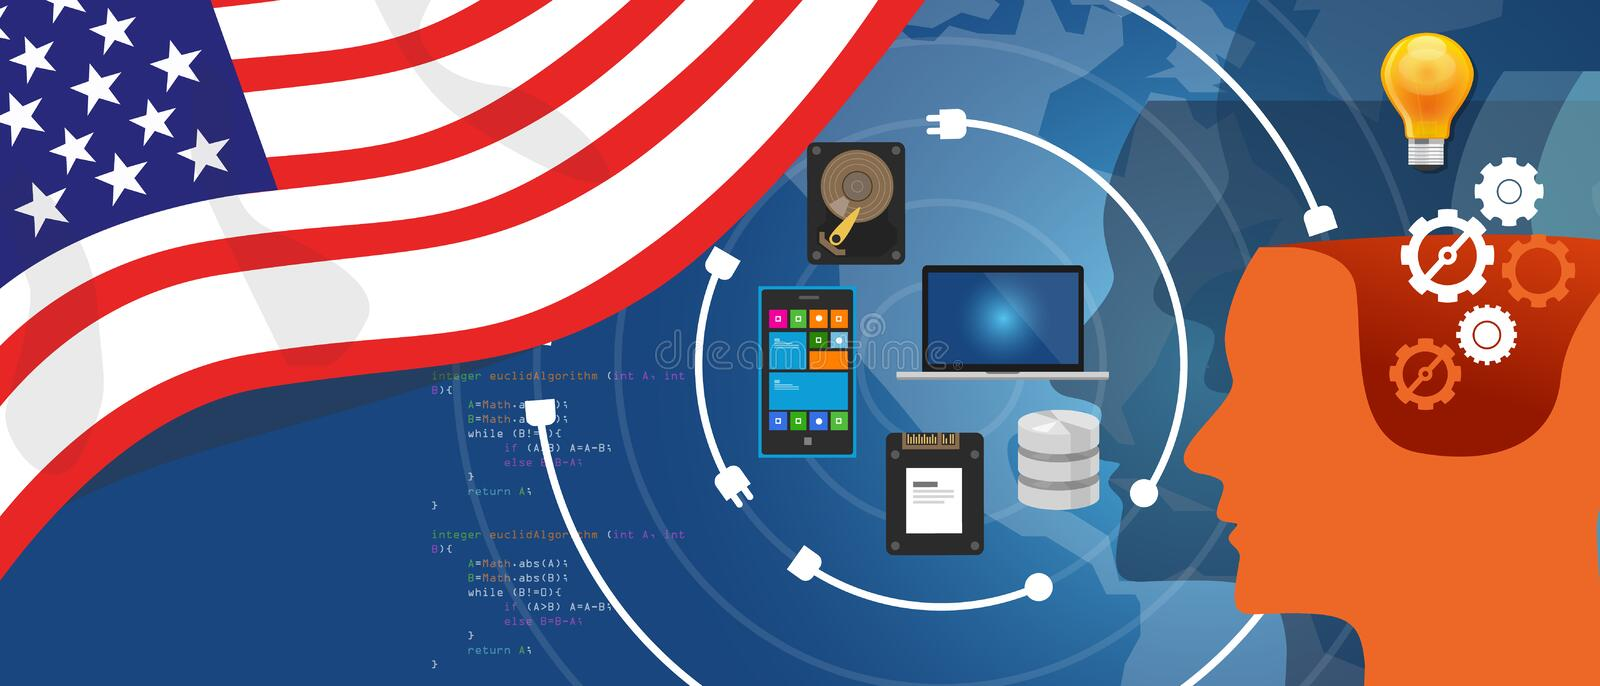 USA America IT information technology digital infrastructure connecting business data via internet network. Using computer software an electronic innovation vector illustration